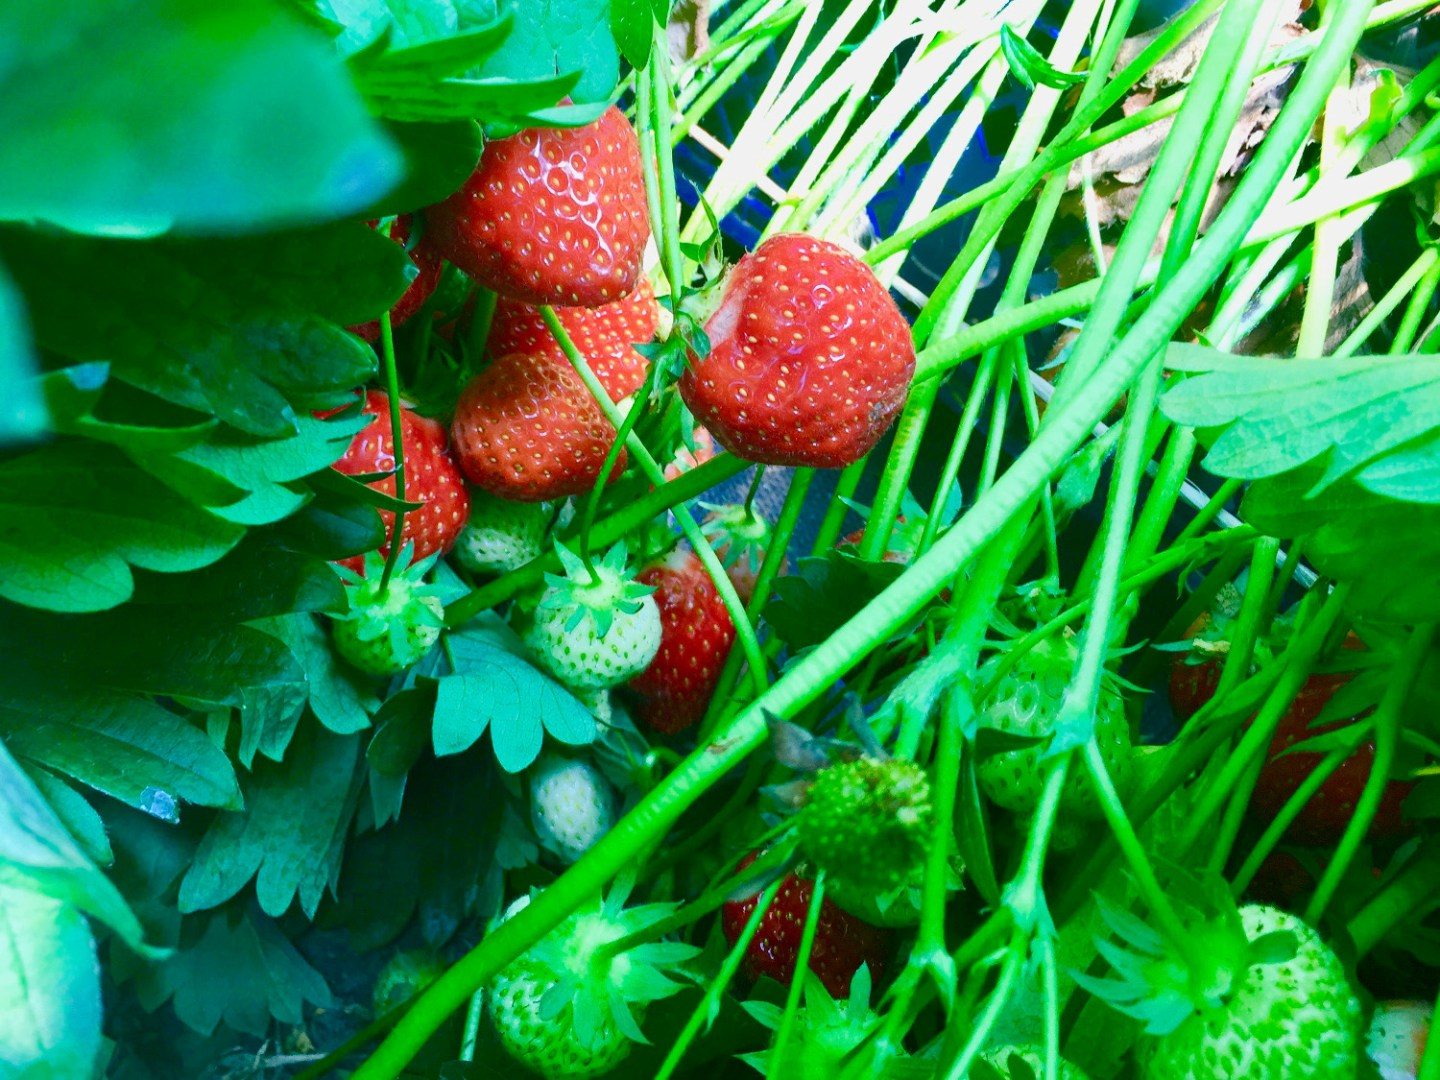 hendrewennol strawberries growing